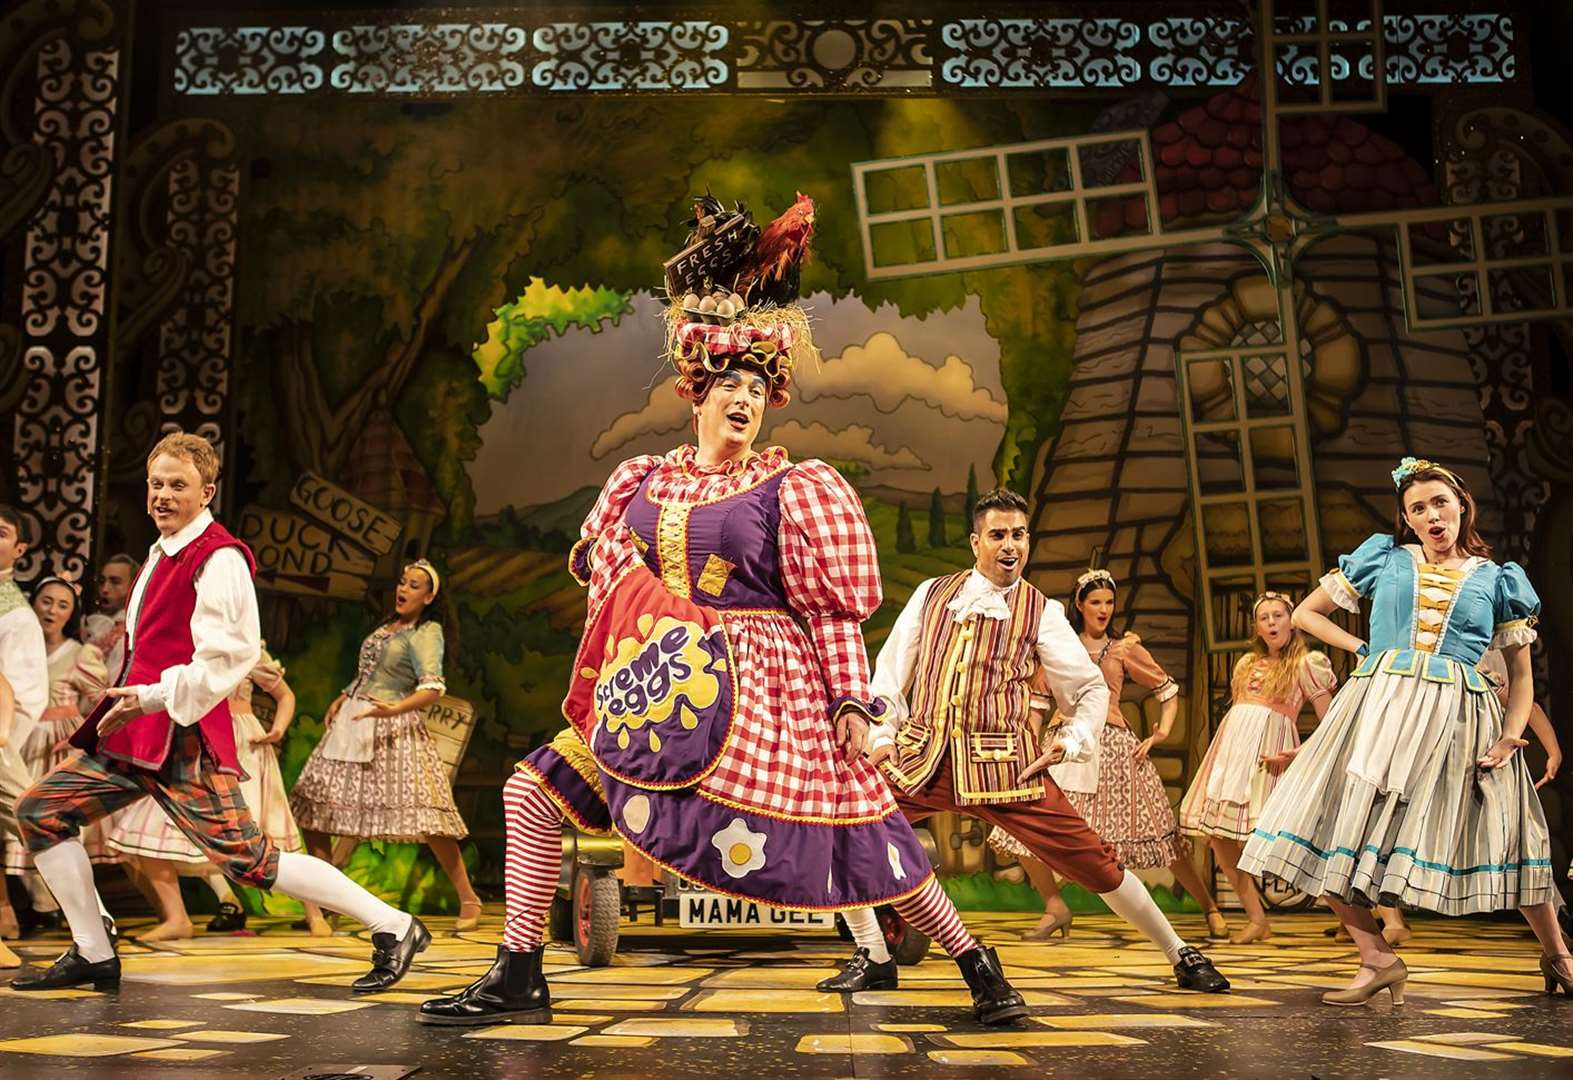 Is this award-winning panto all it's cracked up to be?